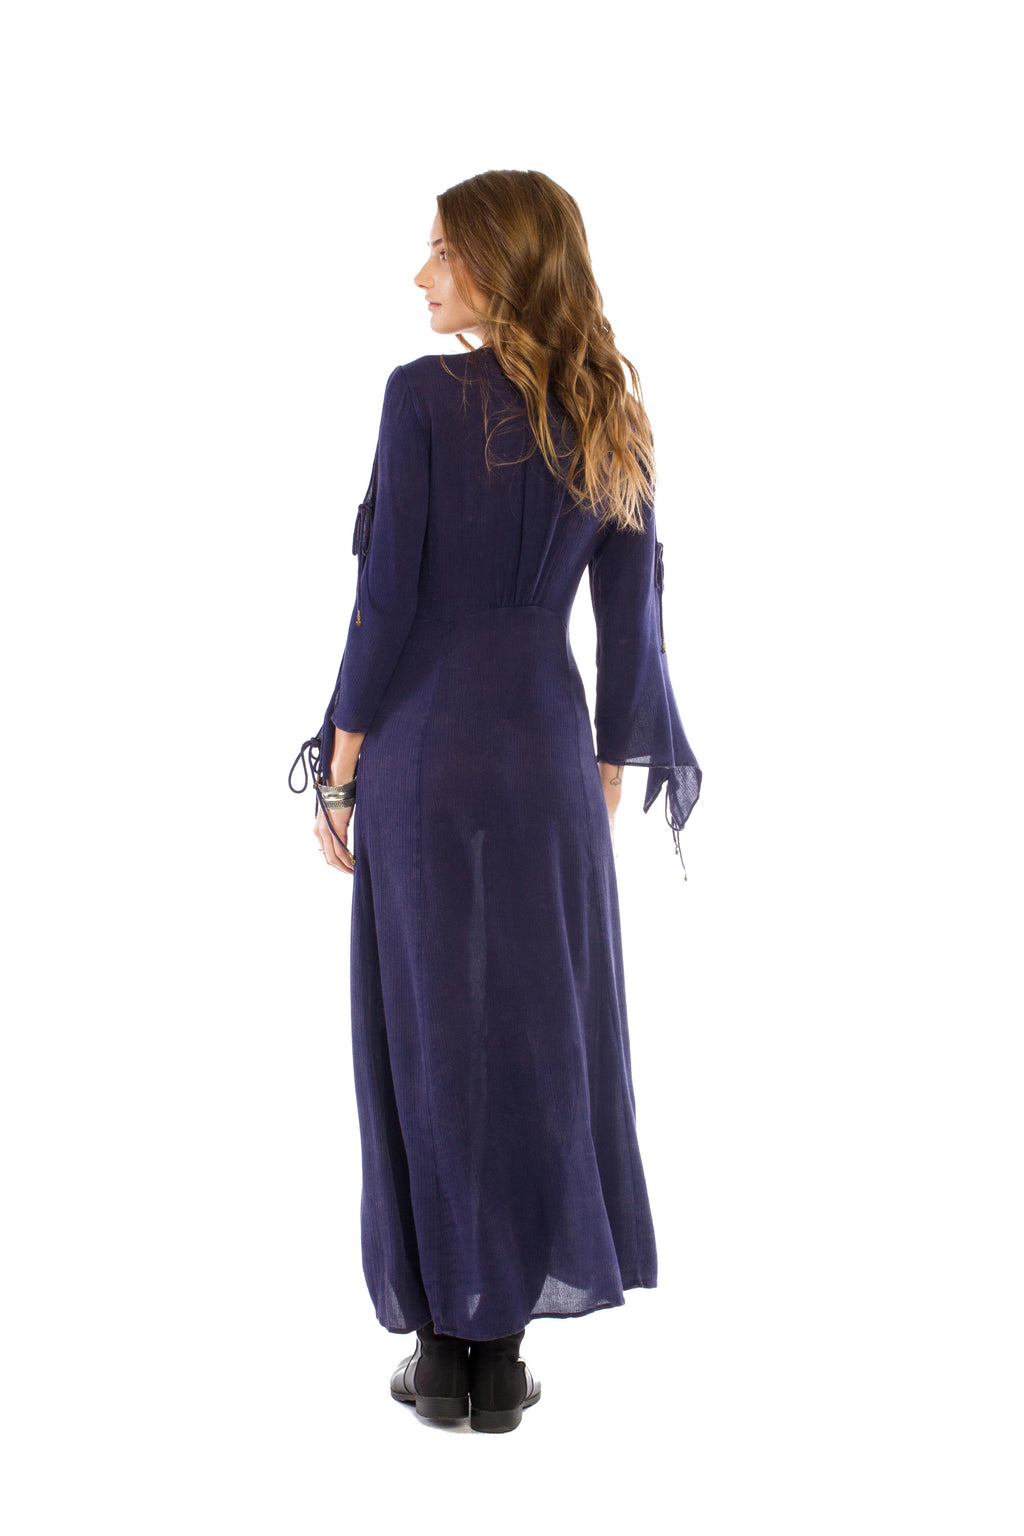 W17-154 Plunging Empire Waist Maxi Dress